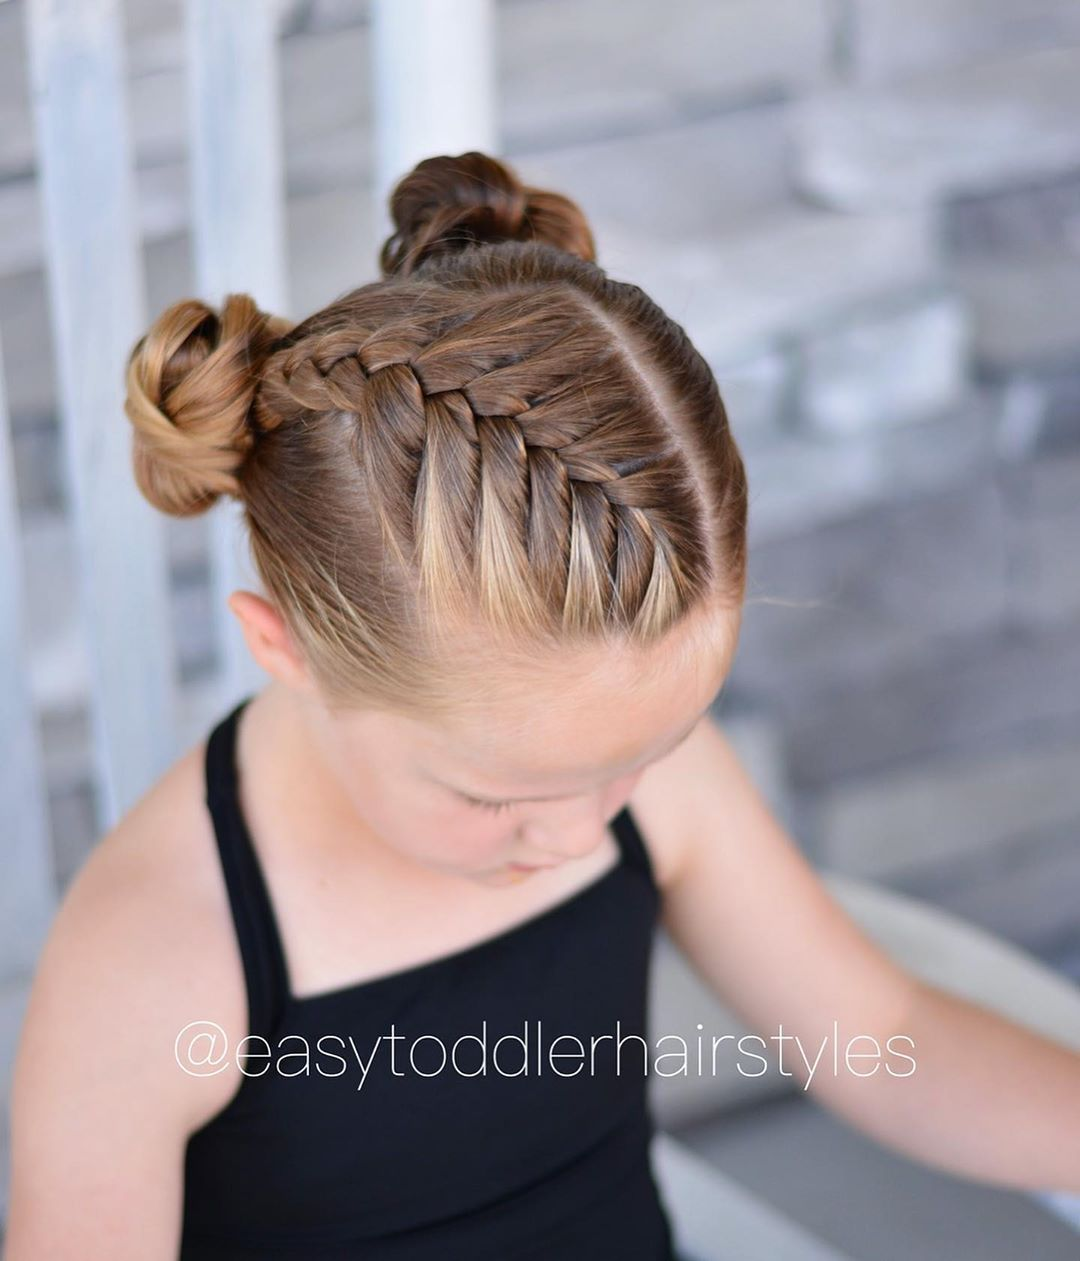 Tiffany Hair For Toddlers On Instagram Front Diagonal French Braid Into Do Cute Hairstyles For Medium Hair Kids Braided Hairstyles Toddler Hairstyles Girl